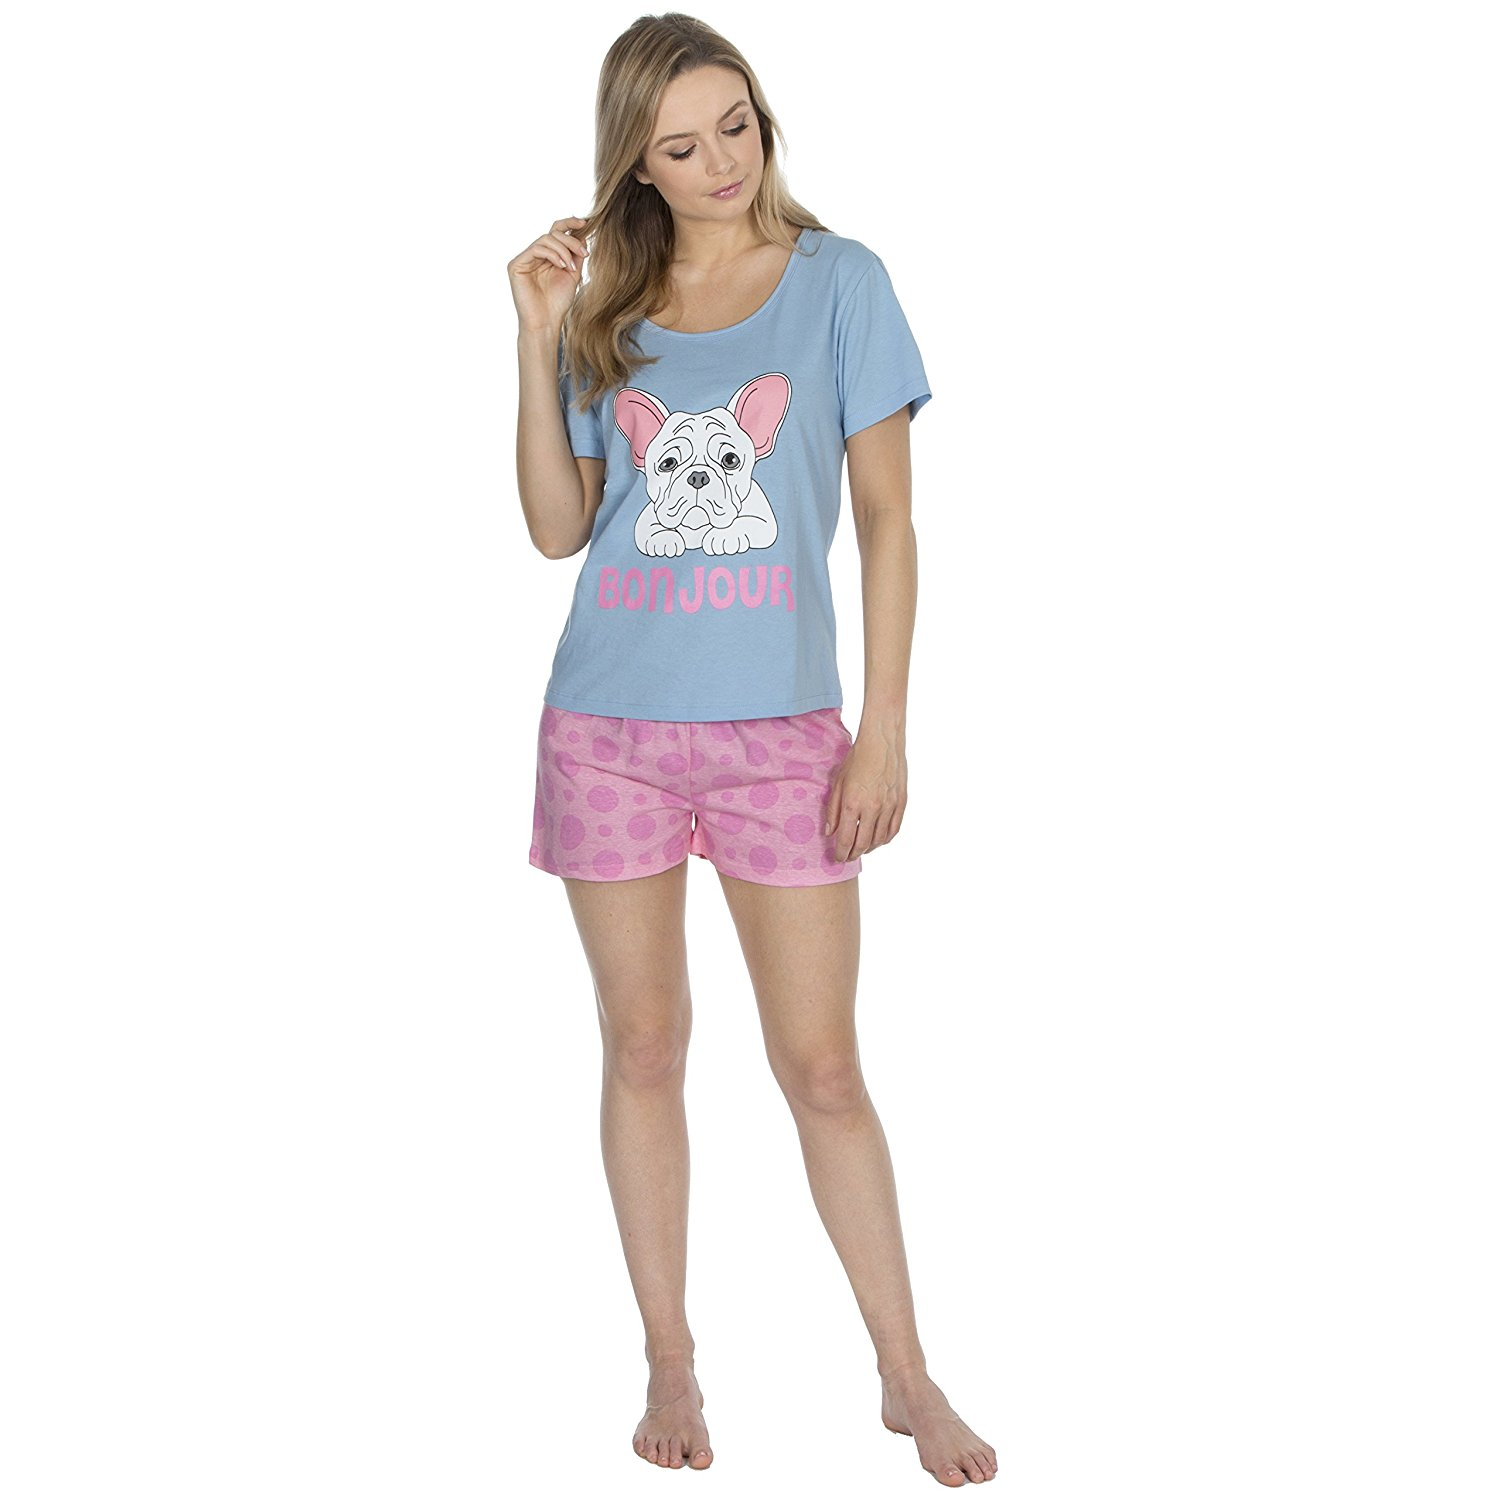 f8874d8e16 Get Quotations · Forever Dreaming Ladies Pyjamas Shorts and T Shirt Set  Pugs Or Cupcake Design